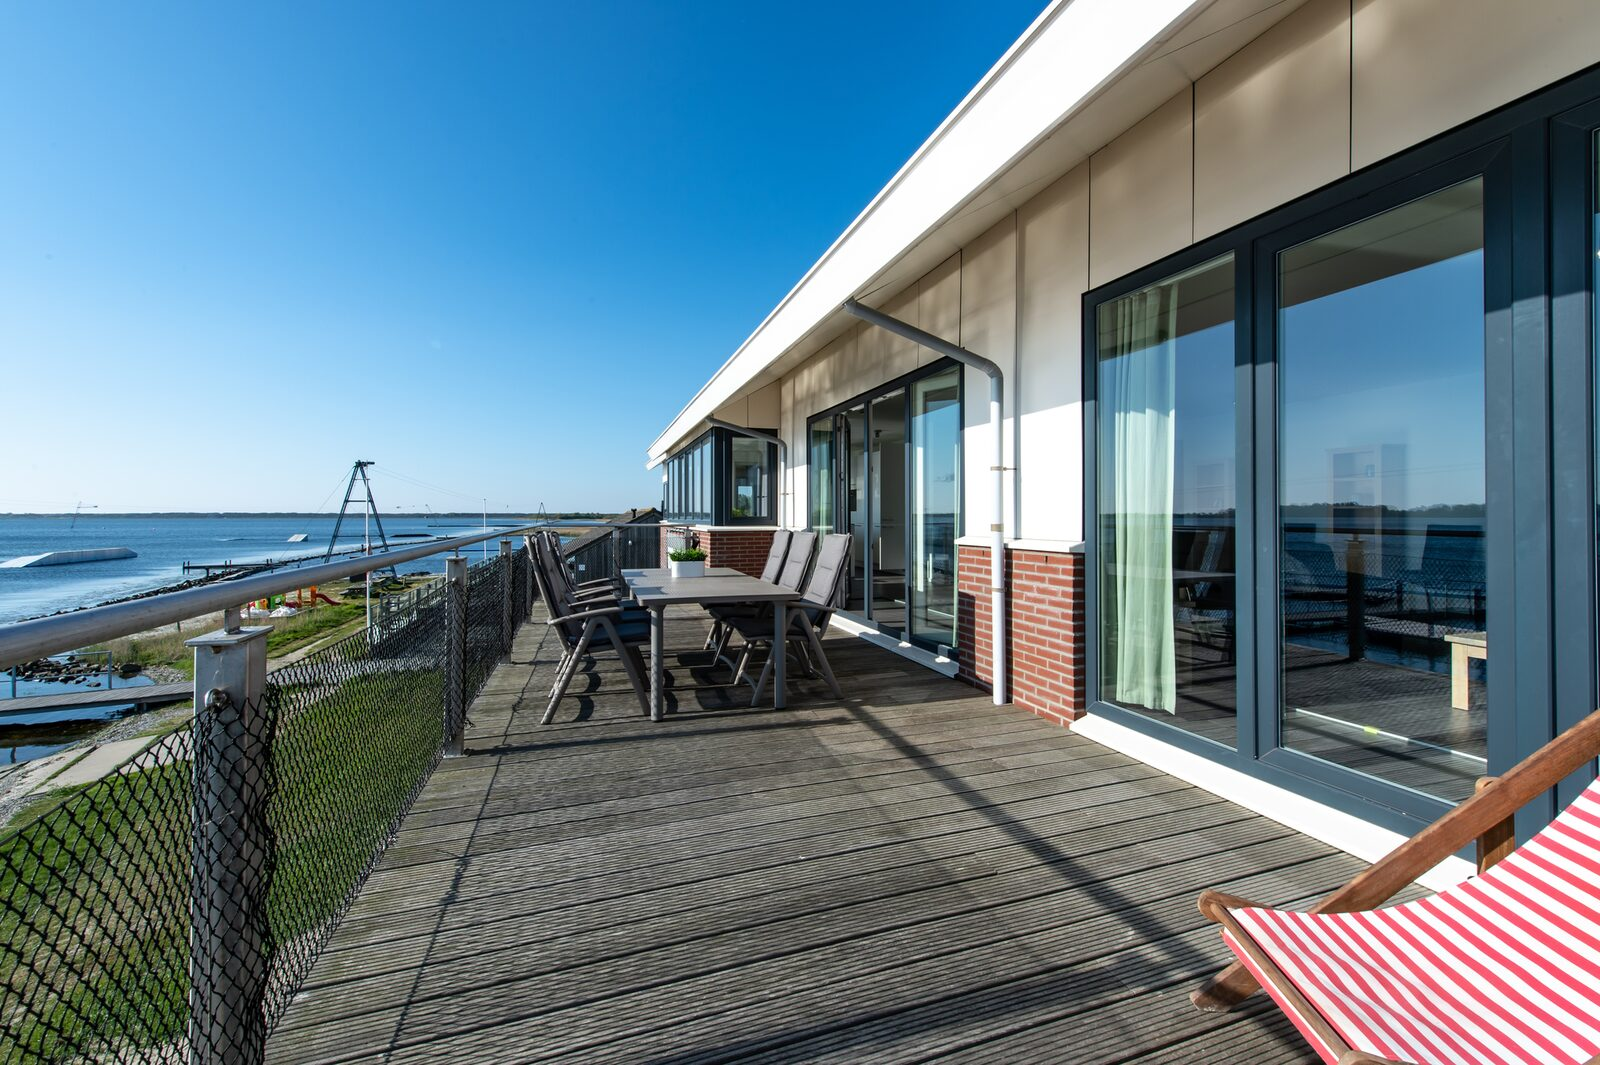 Penthouse XL | Schotsman Watersport